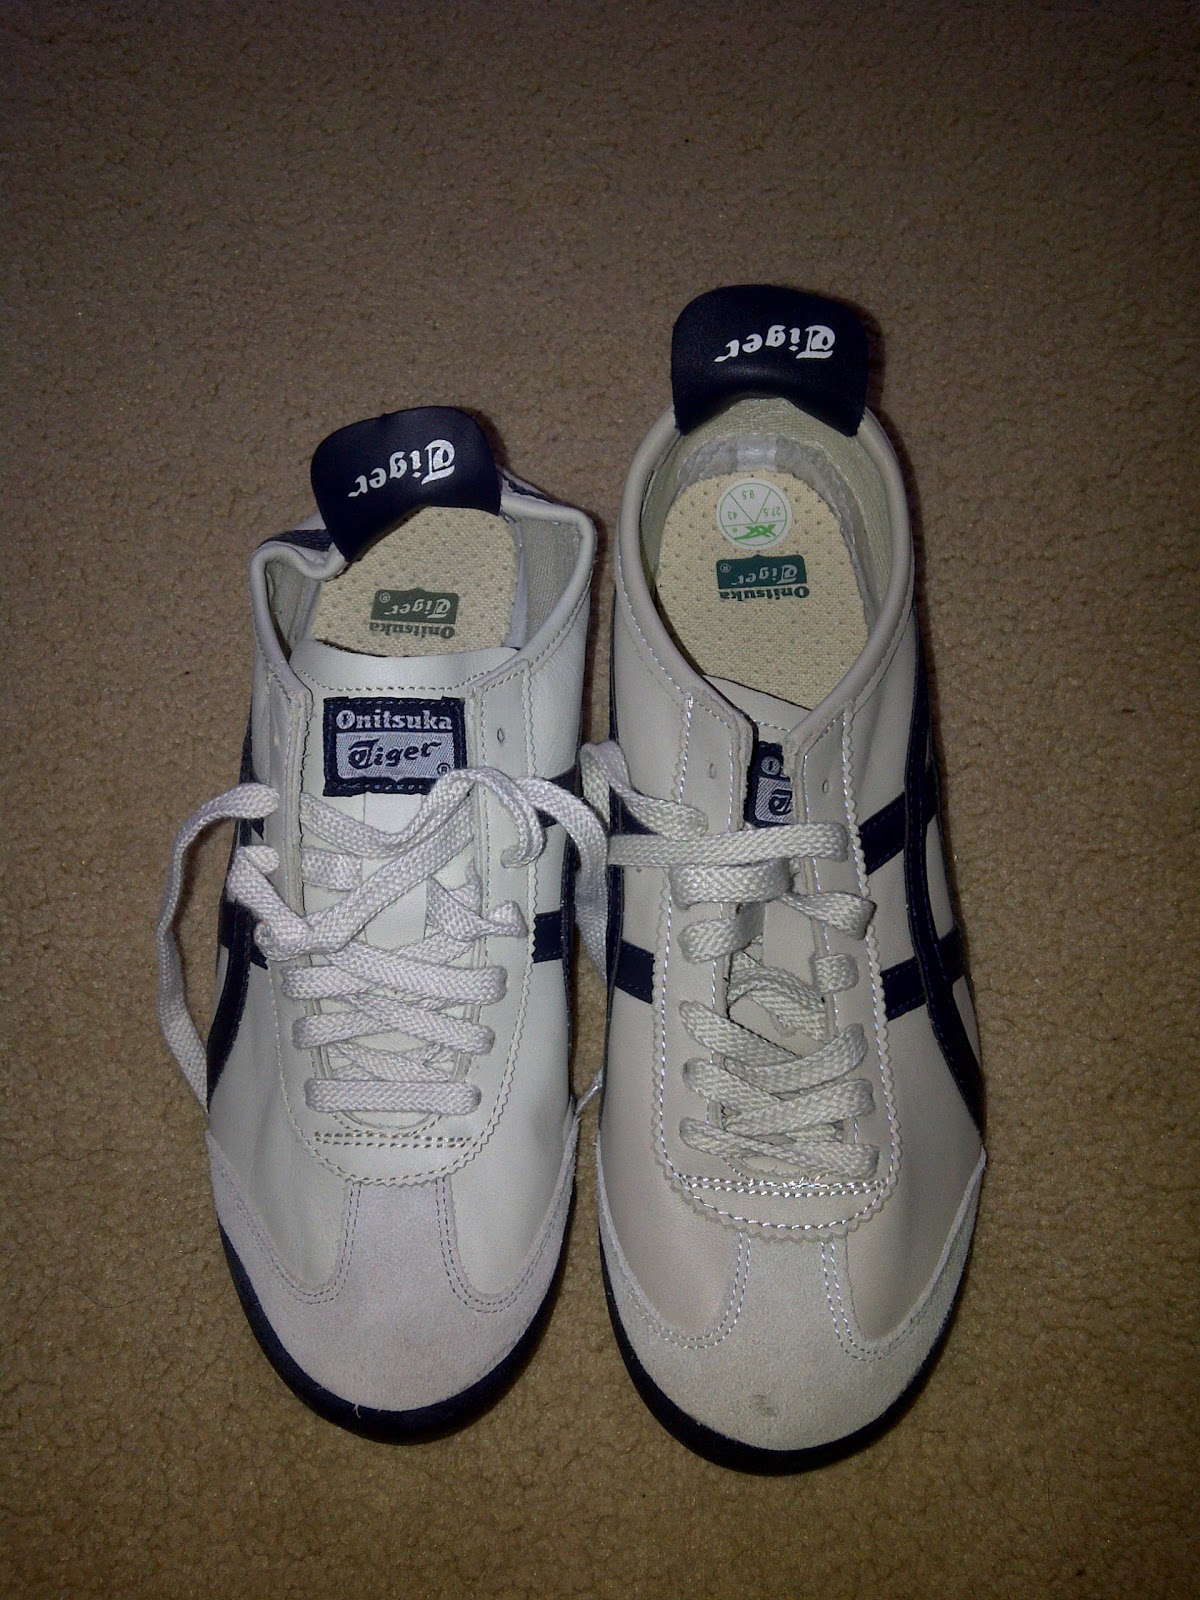 reputable site 40245 fafc2 FOOT WEAR GALLERY: HOW TO SPOT FAKE ONITSUKA TIGER